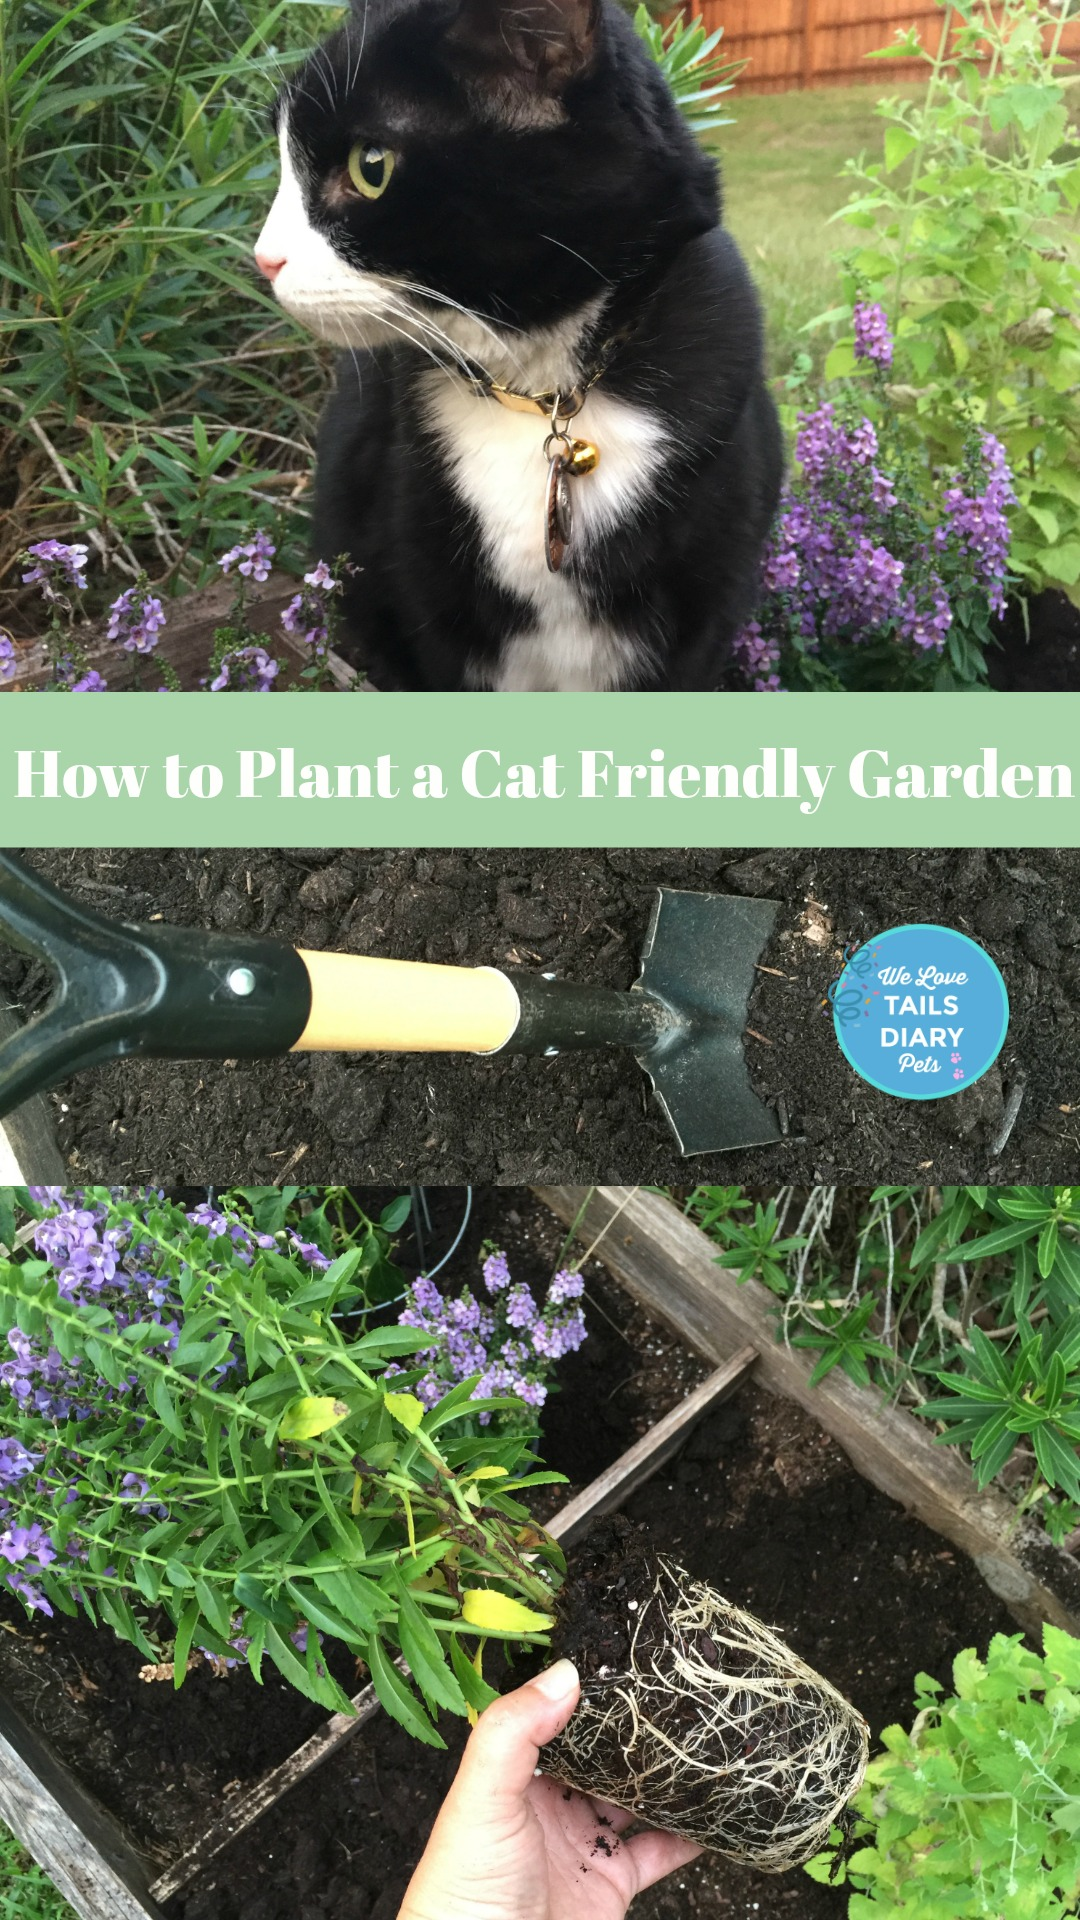 How to Plant and Cat Friendly Garden